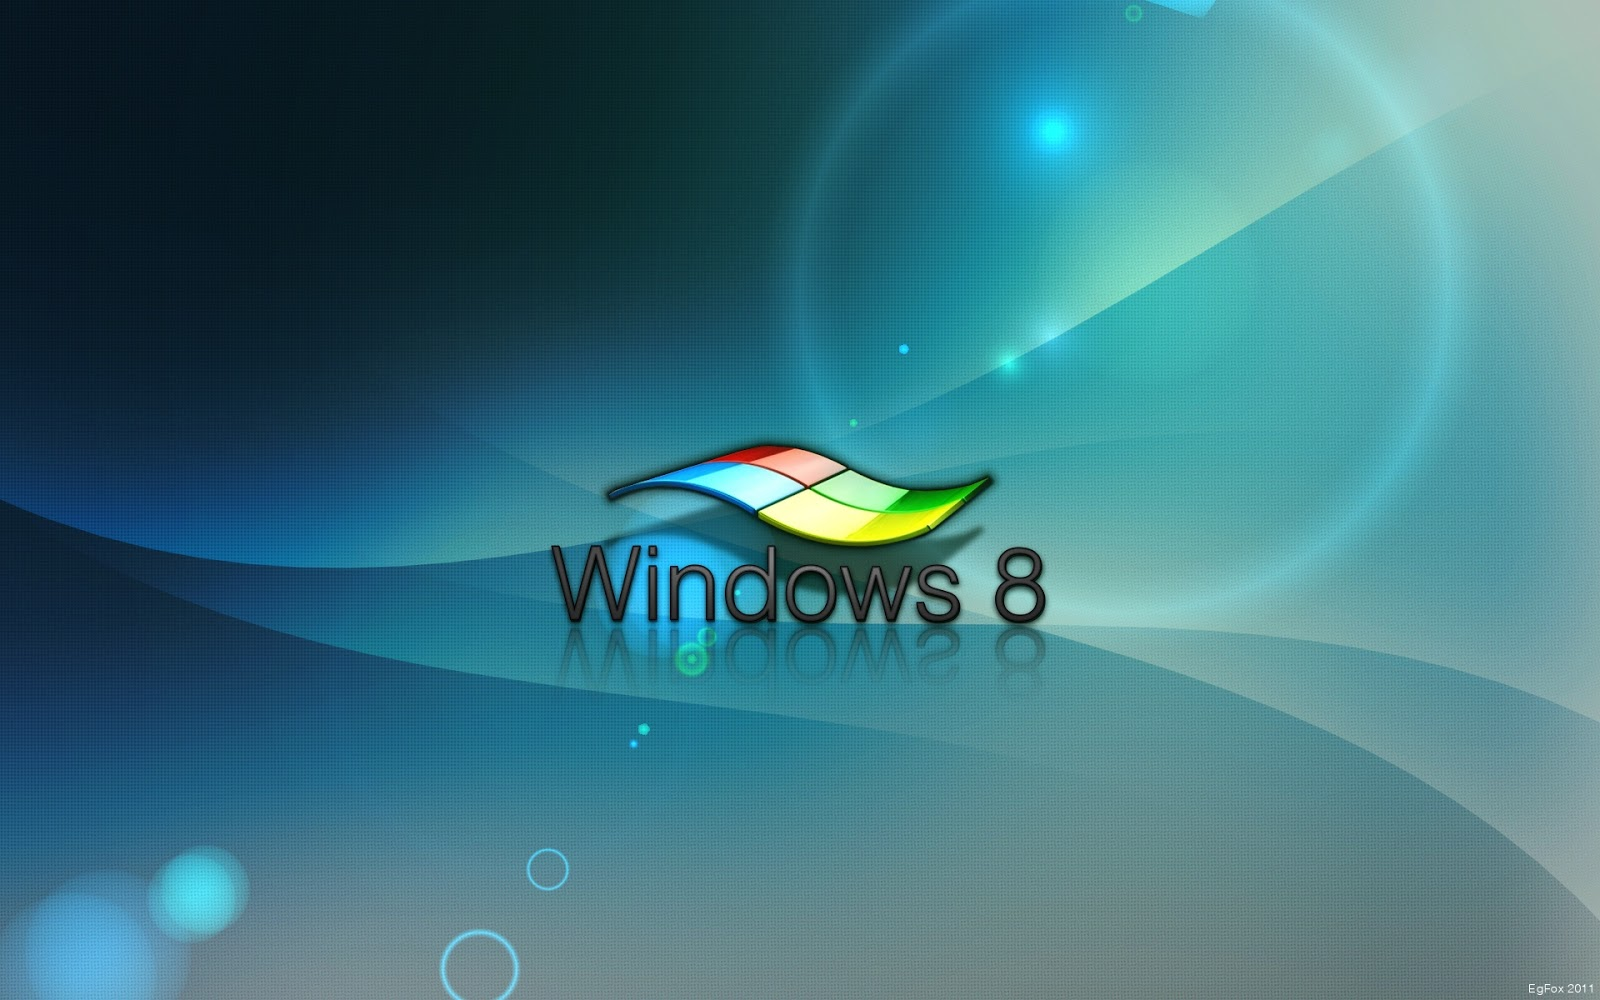 Latest Windows 8 Backgrounds and Wallpapers New Windows 8 classic 1600x1000